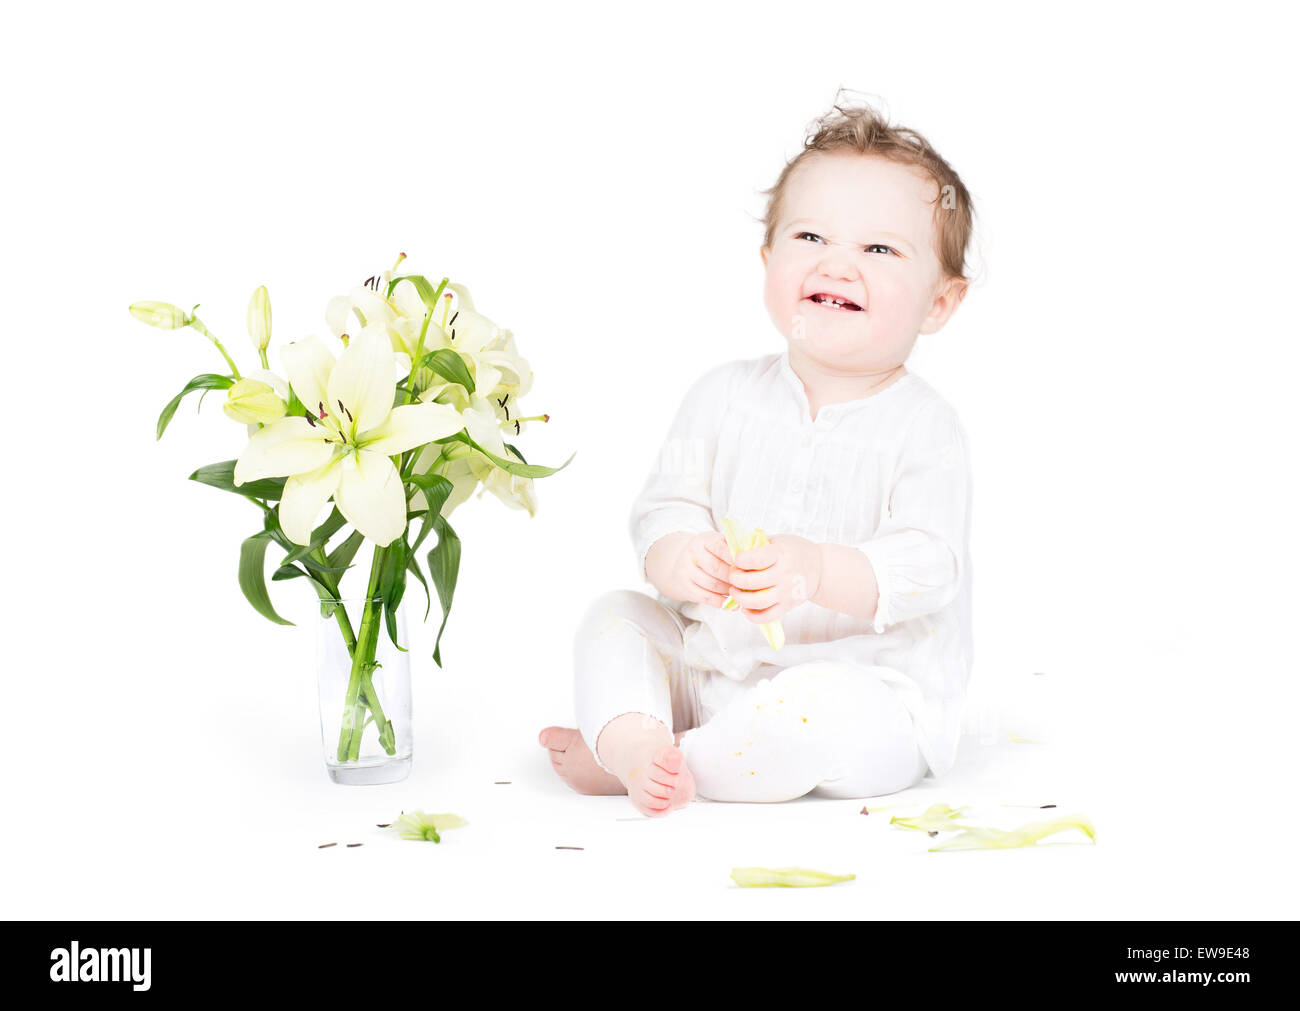 Funny little baby playing with lily flowers, on white - Stock Image